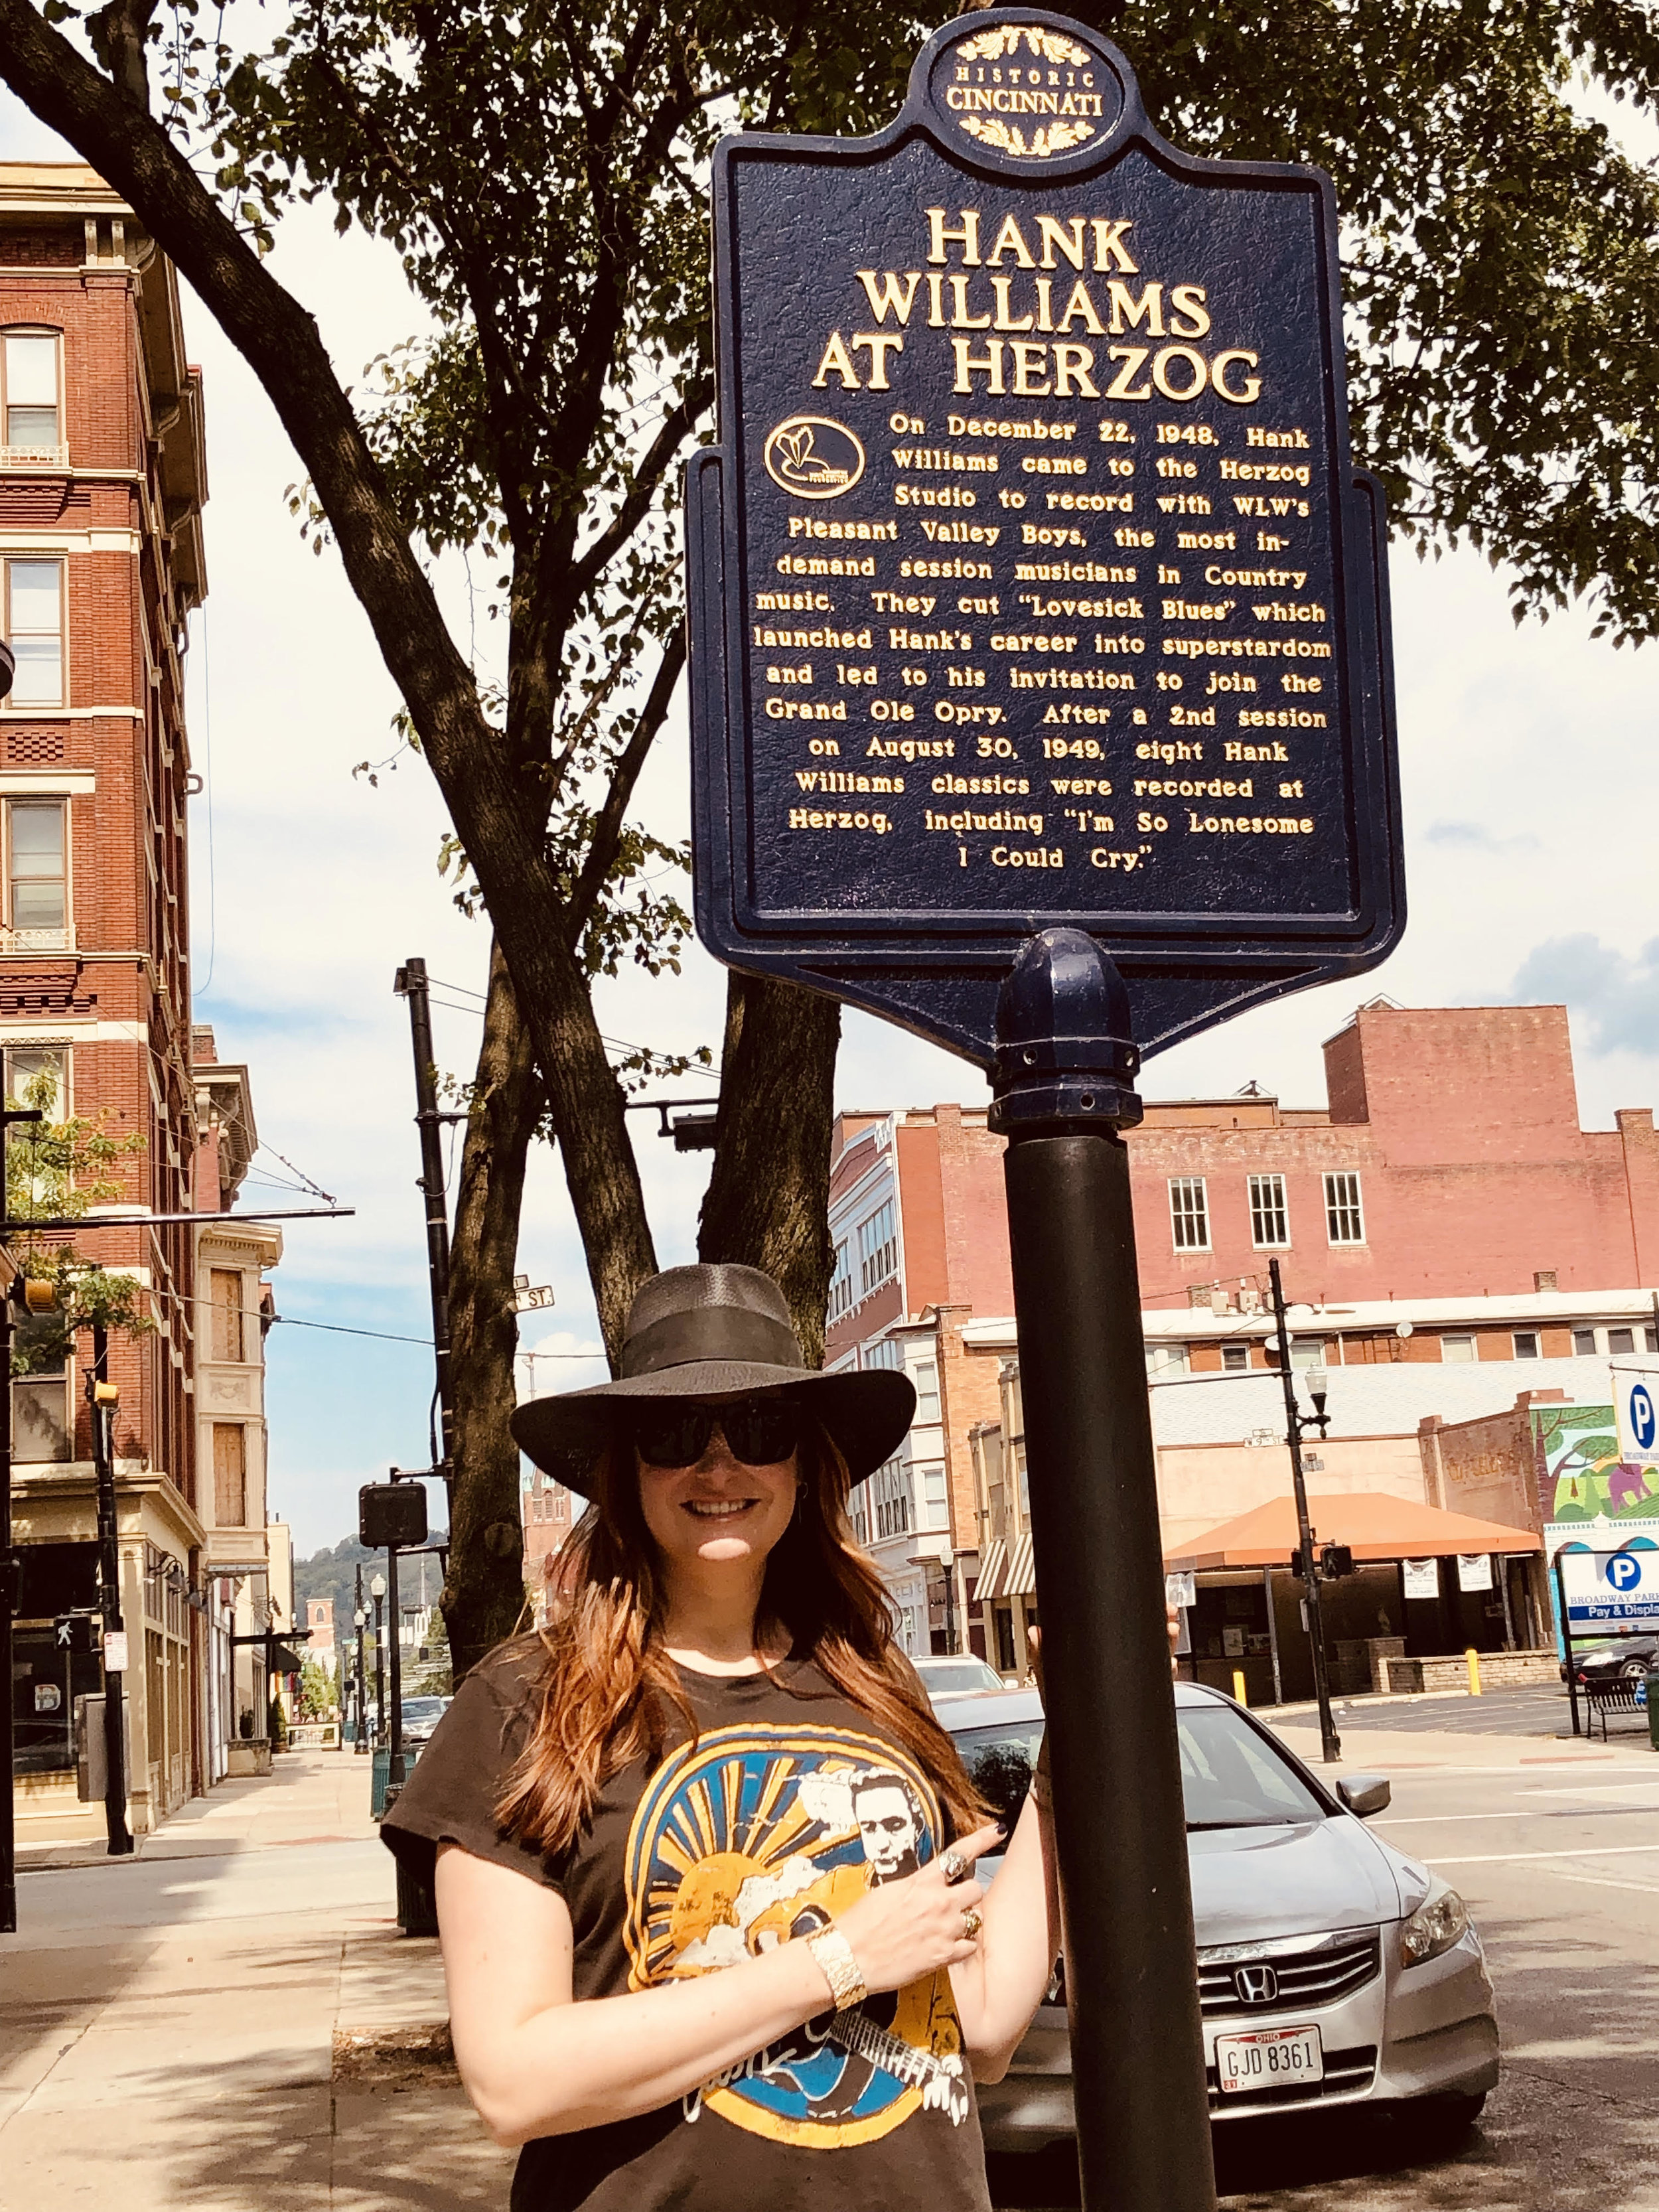 Hilary Williams with Herzog commemorative marker at 811 Race Street